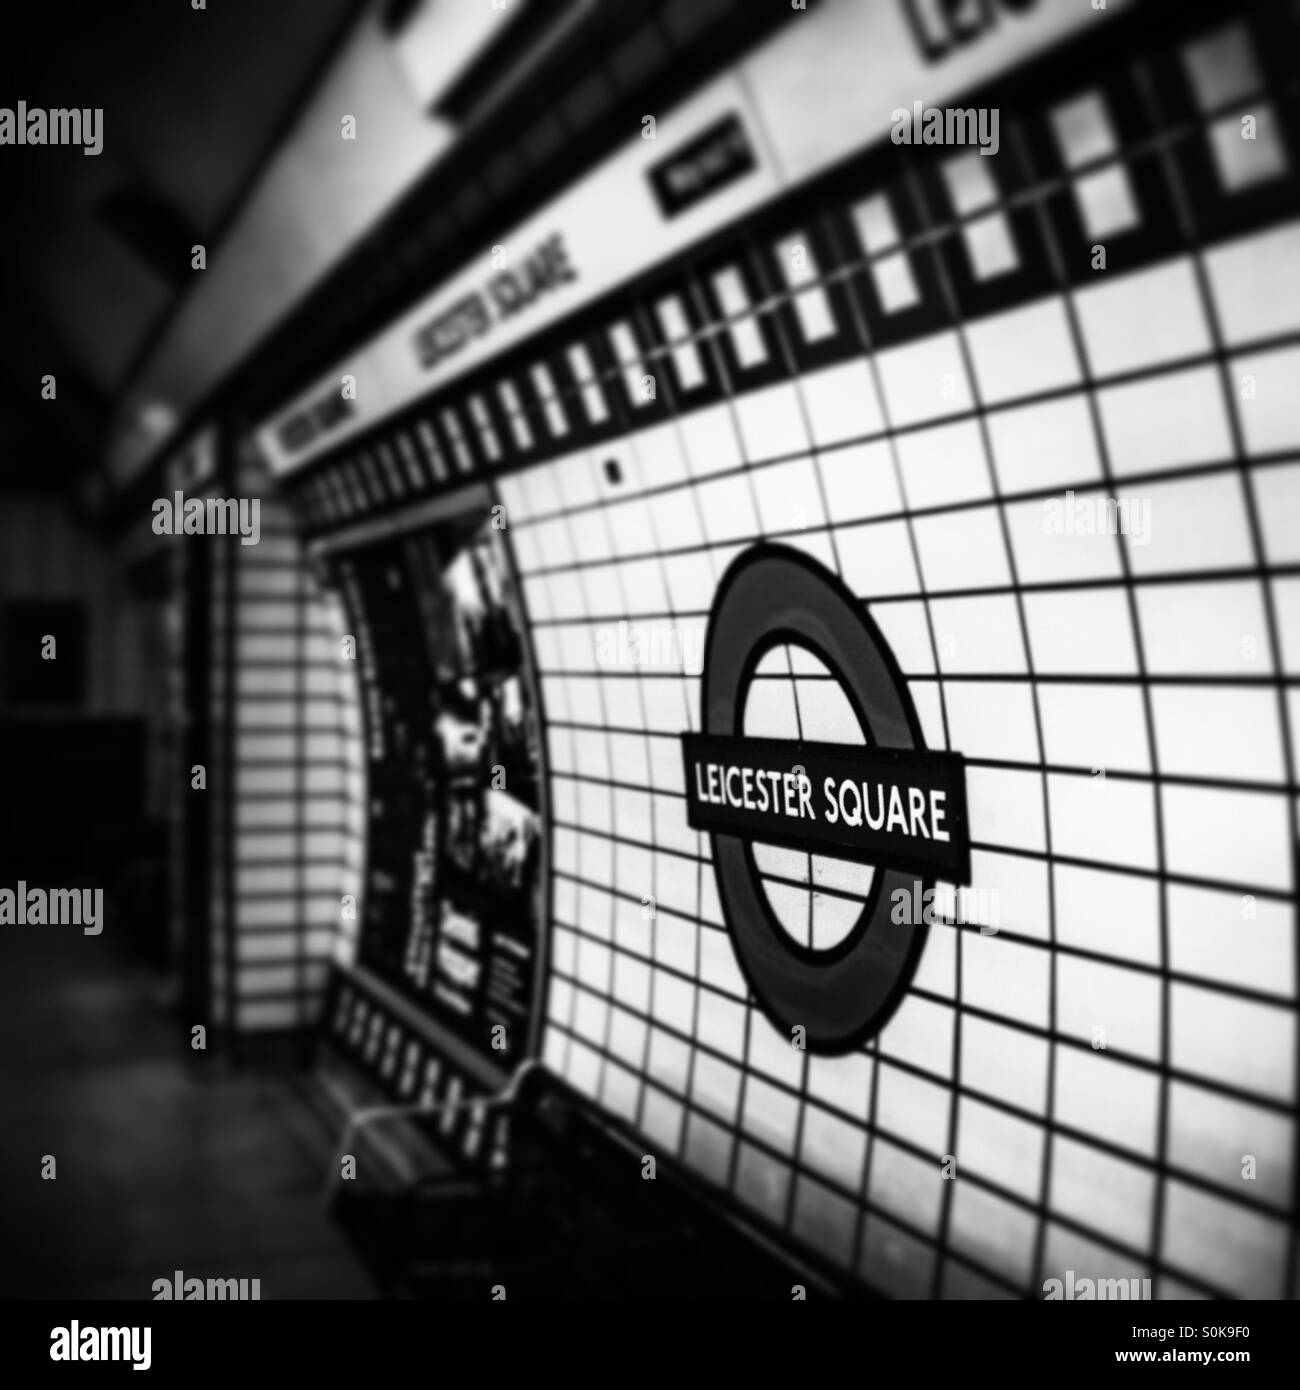 Leicester Square underground tube station at night - Stock Image